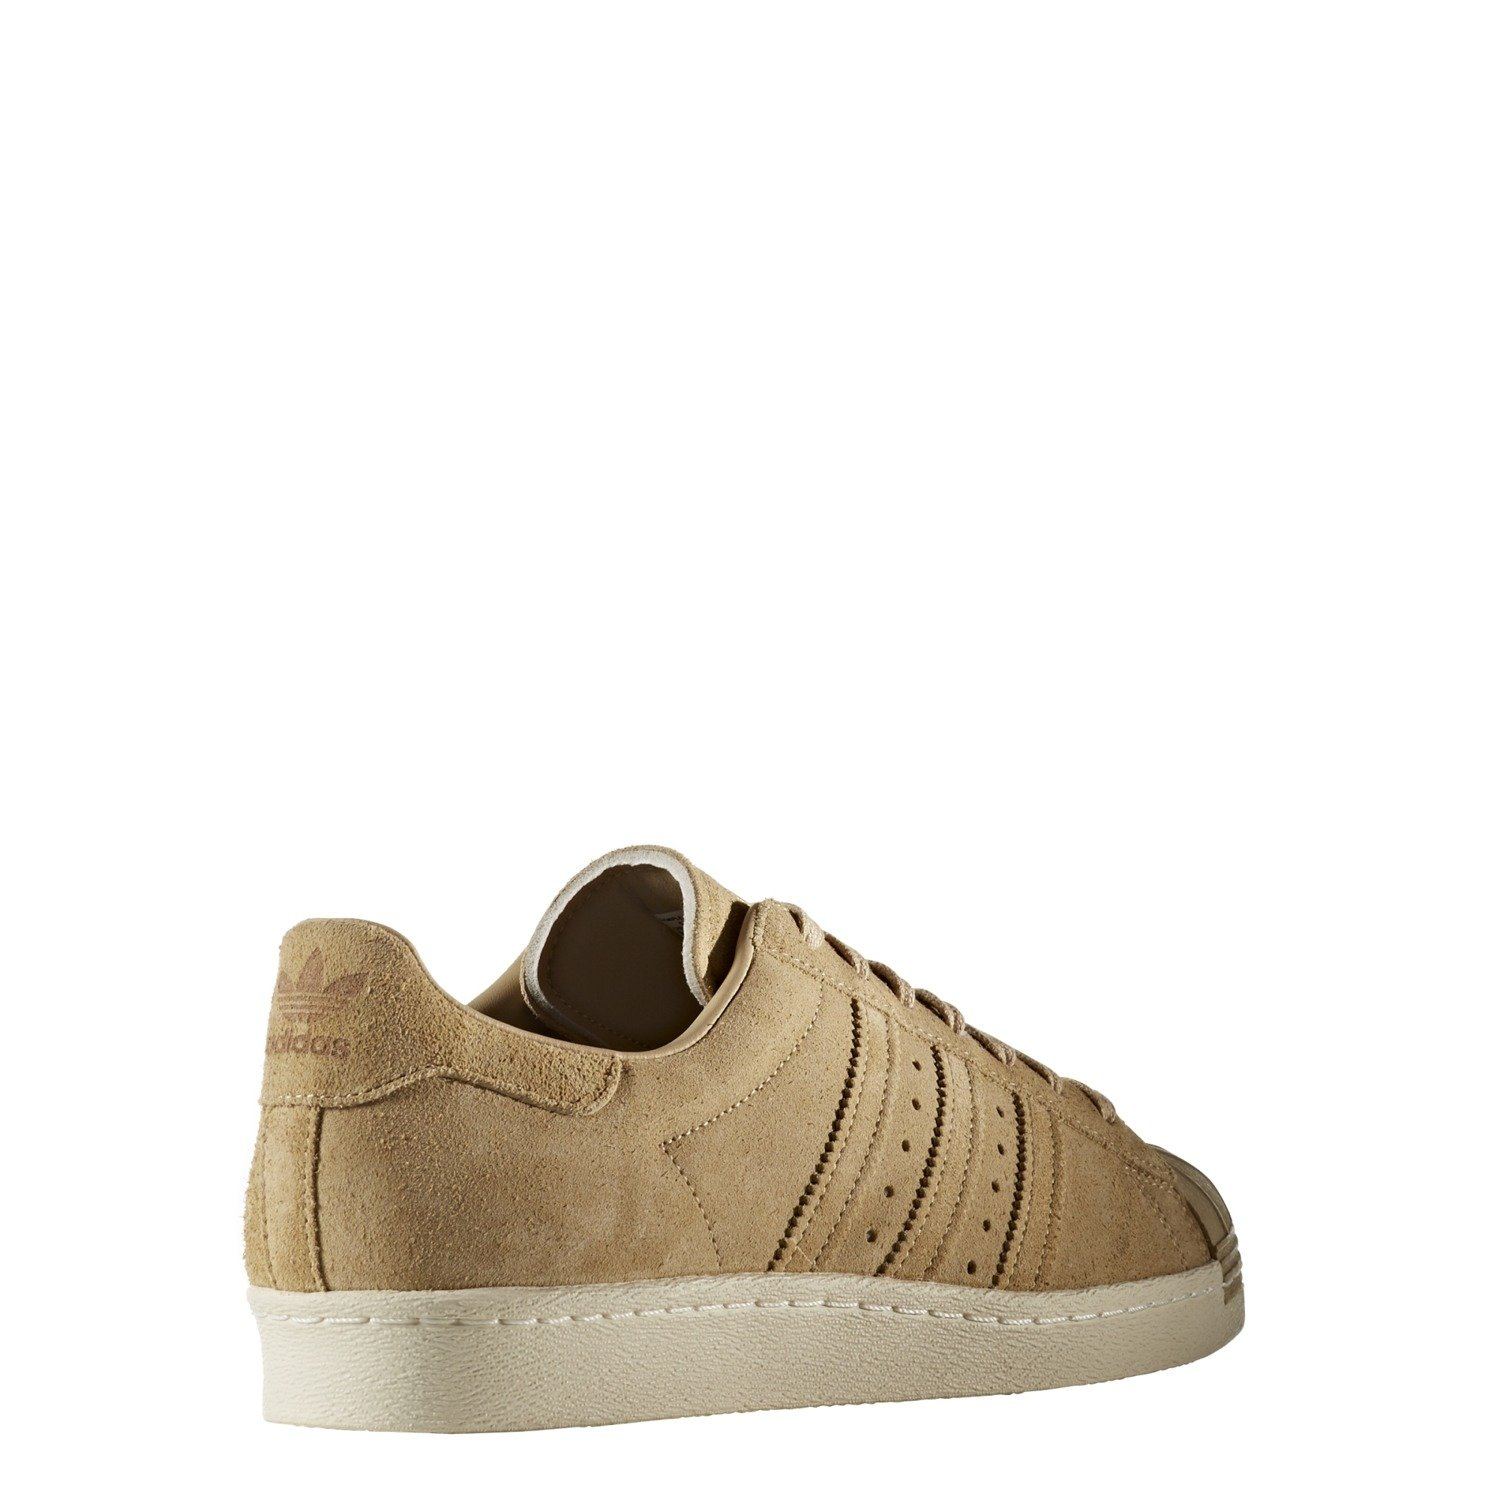 new style 8bddc f477b gold adidas stan smith us 8.5 crazy 8 sneakers